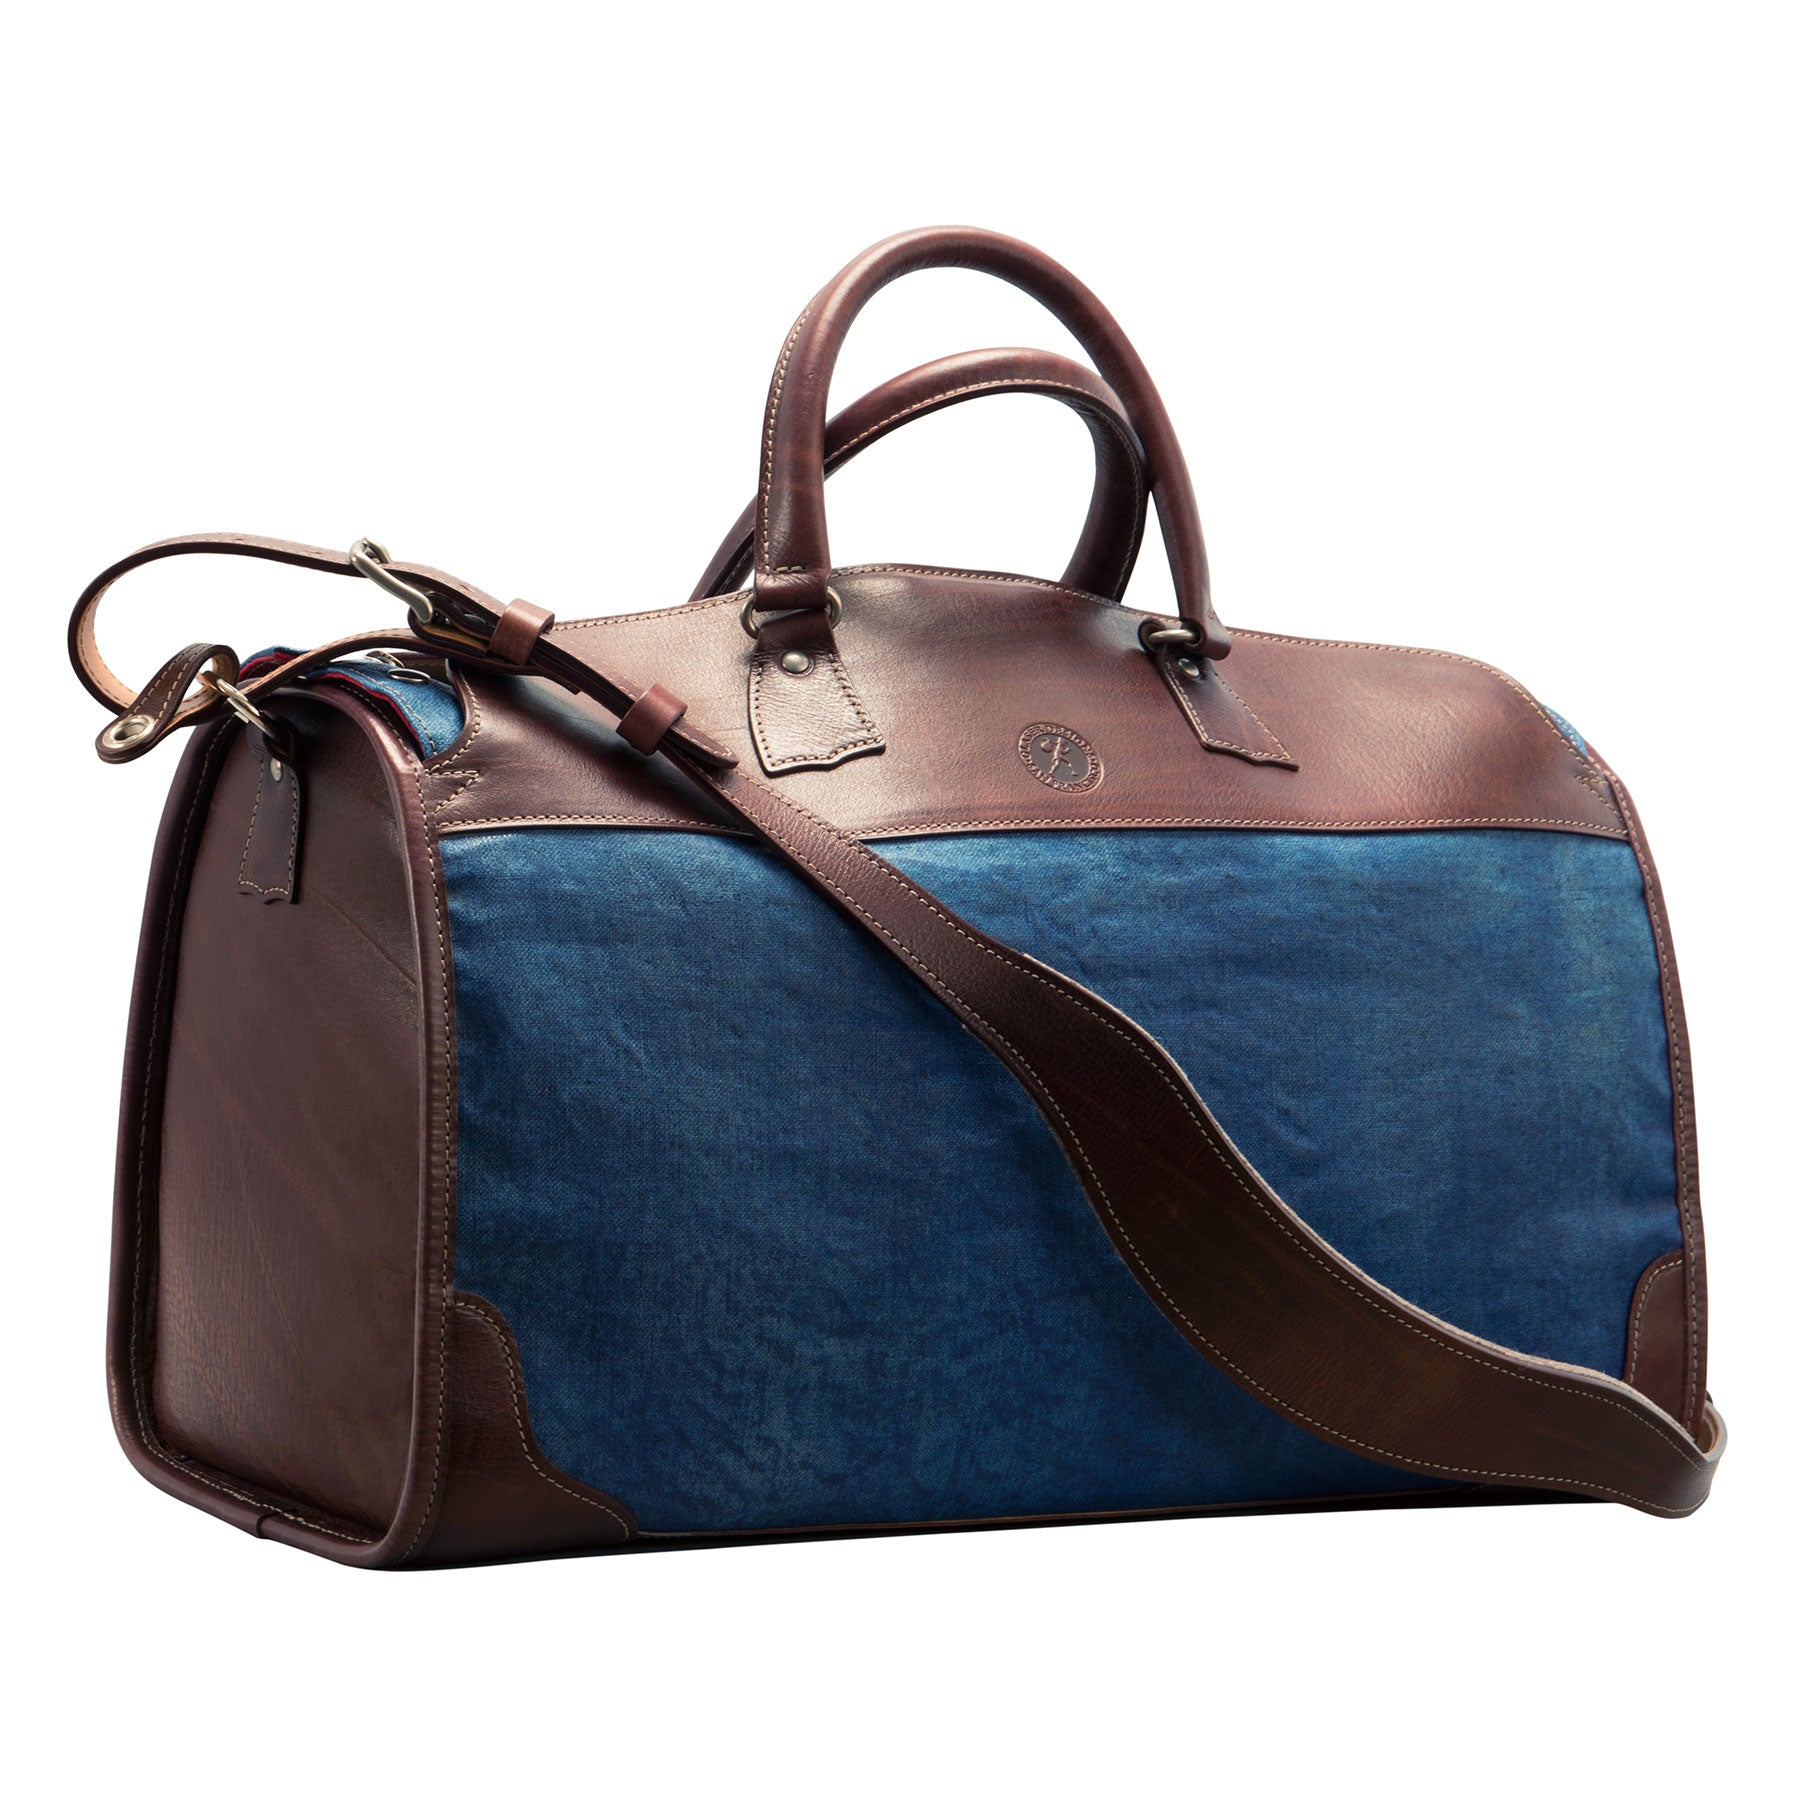 Stadium Bag: hand-painted linen and hand-grained, hand-colored leather